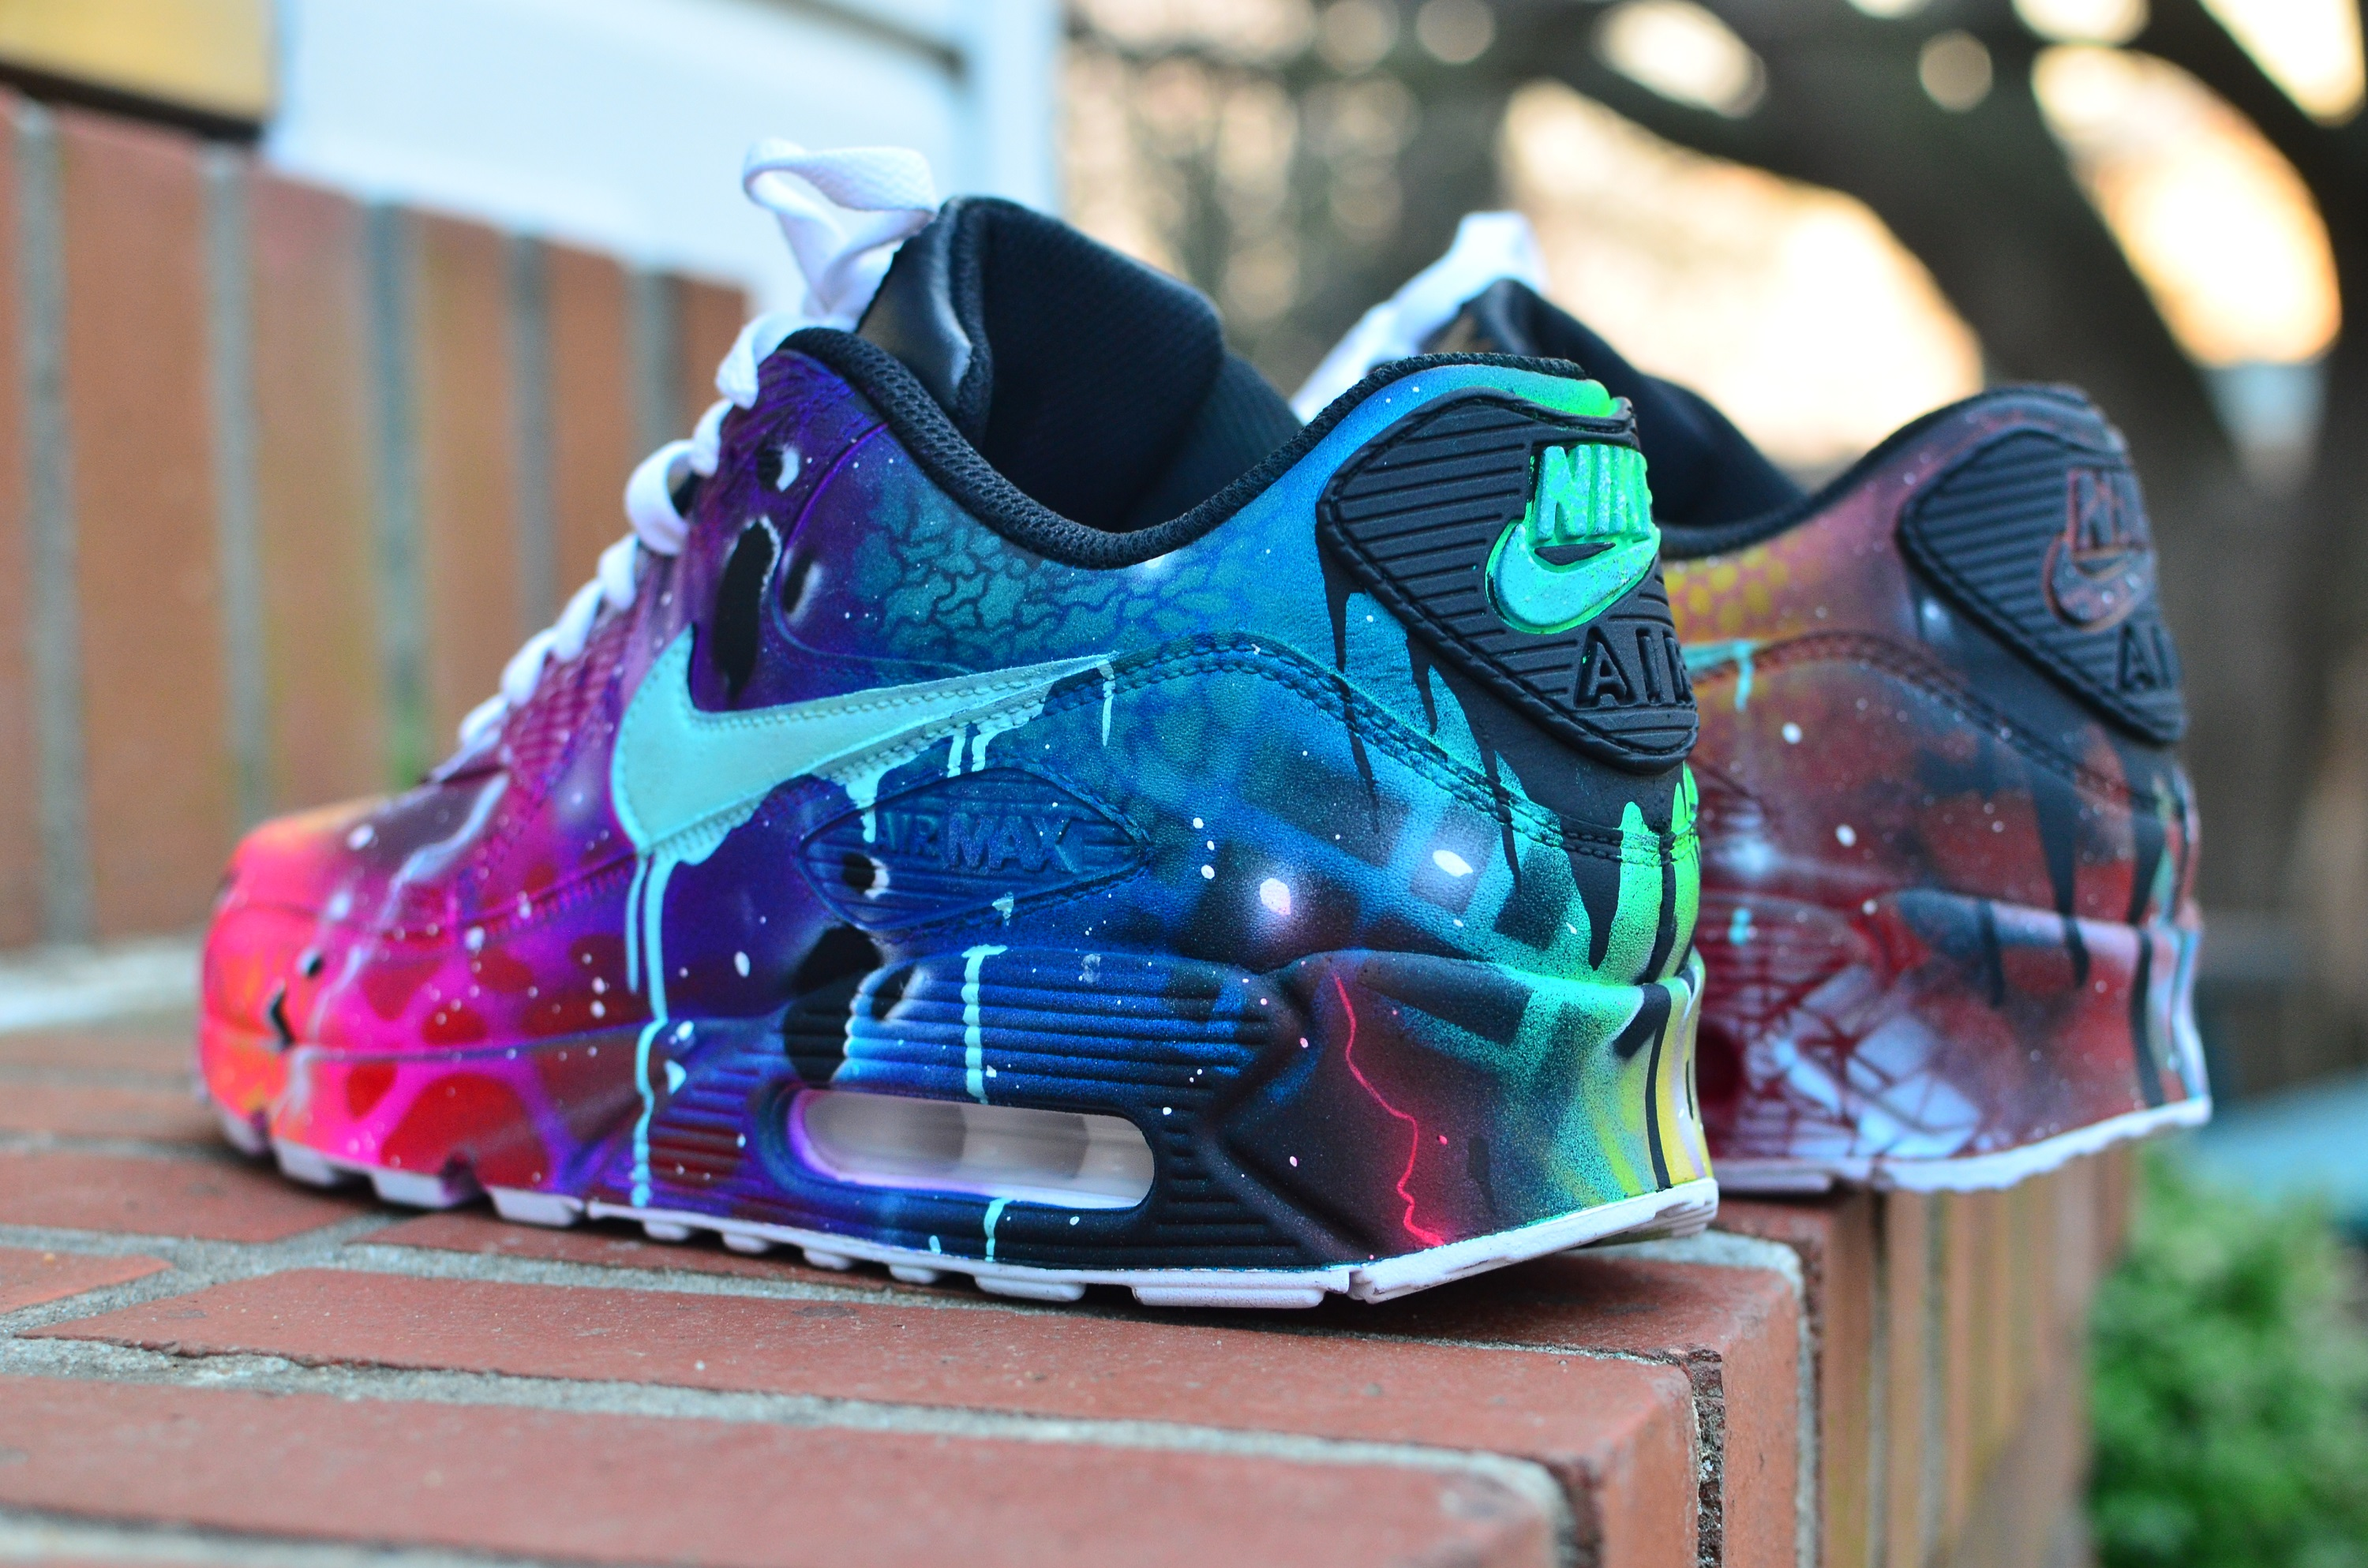 Nike Air Max 90 Galactic Drip sold by Drip Kingz